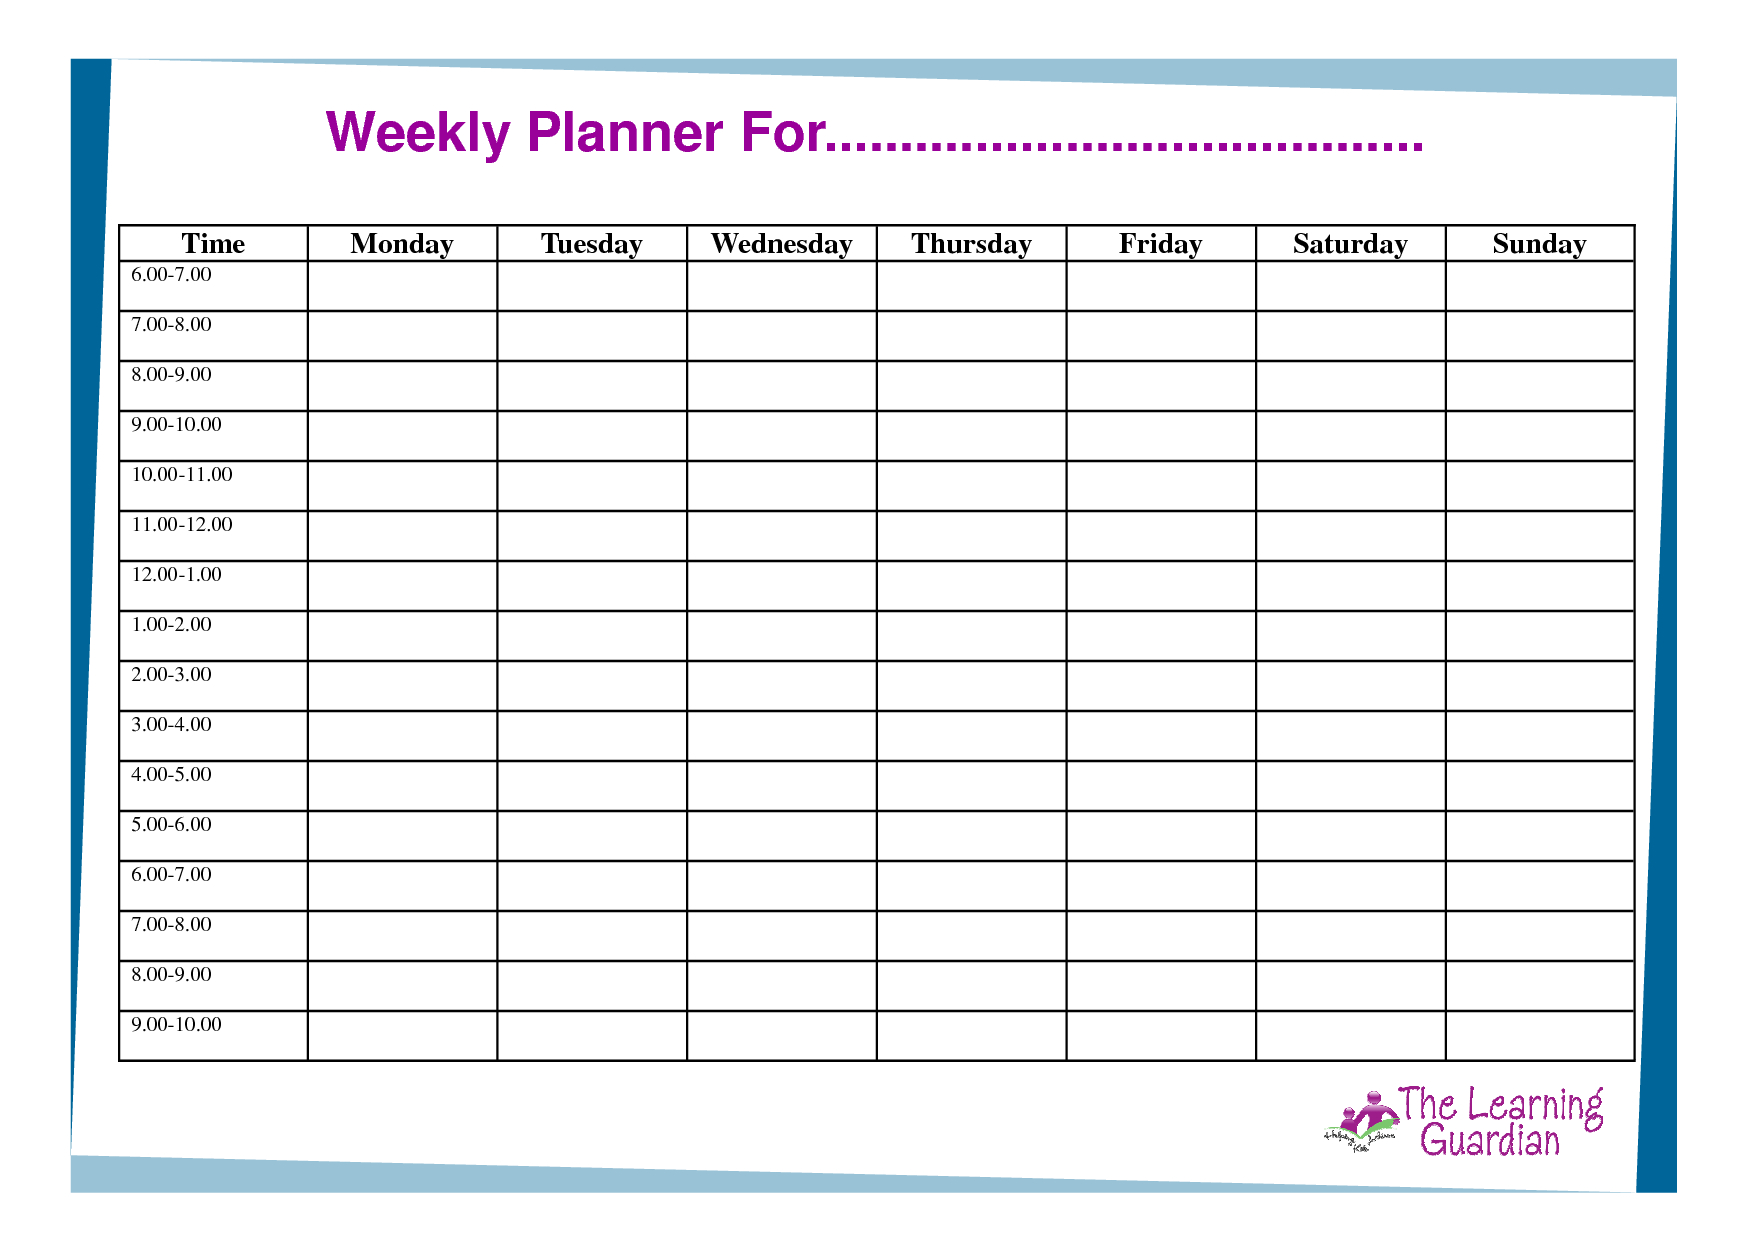 Free Printable Weekly Calendar Templates   Weekly Planner For Time intended for Blank Weekly Monday Through Friday Calendar Template